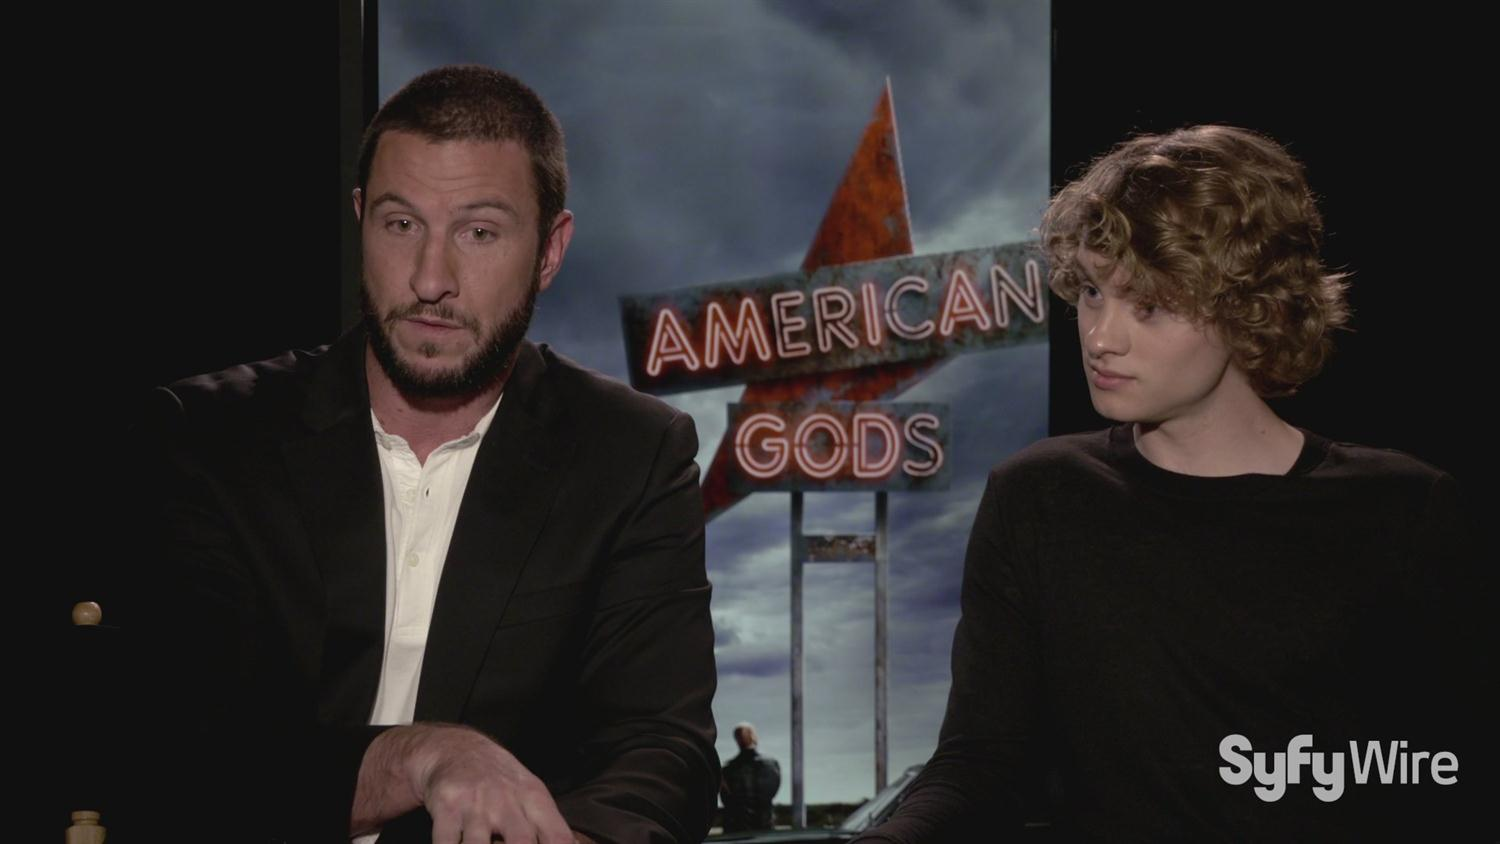 American Gods' Pablo Schreiber and Bruce Langley on Intense Auditions